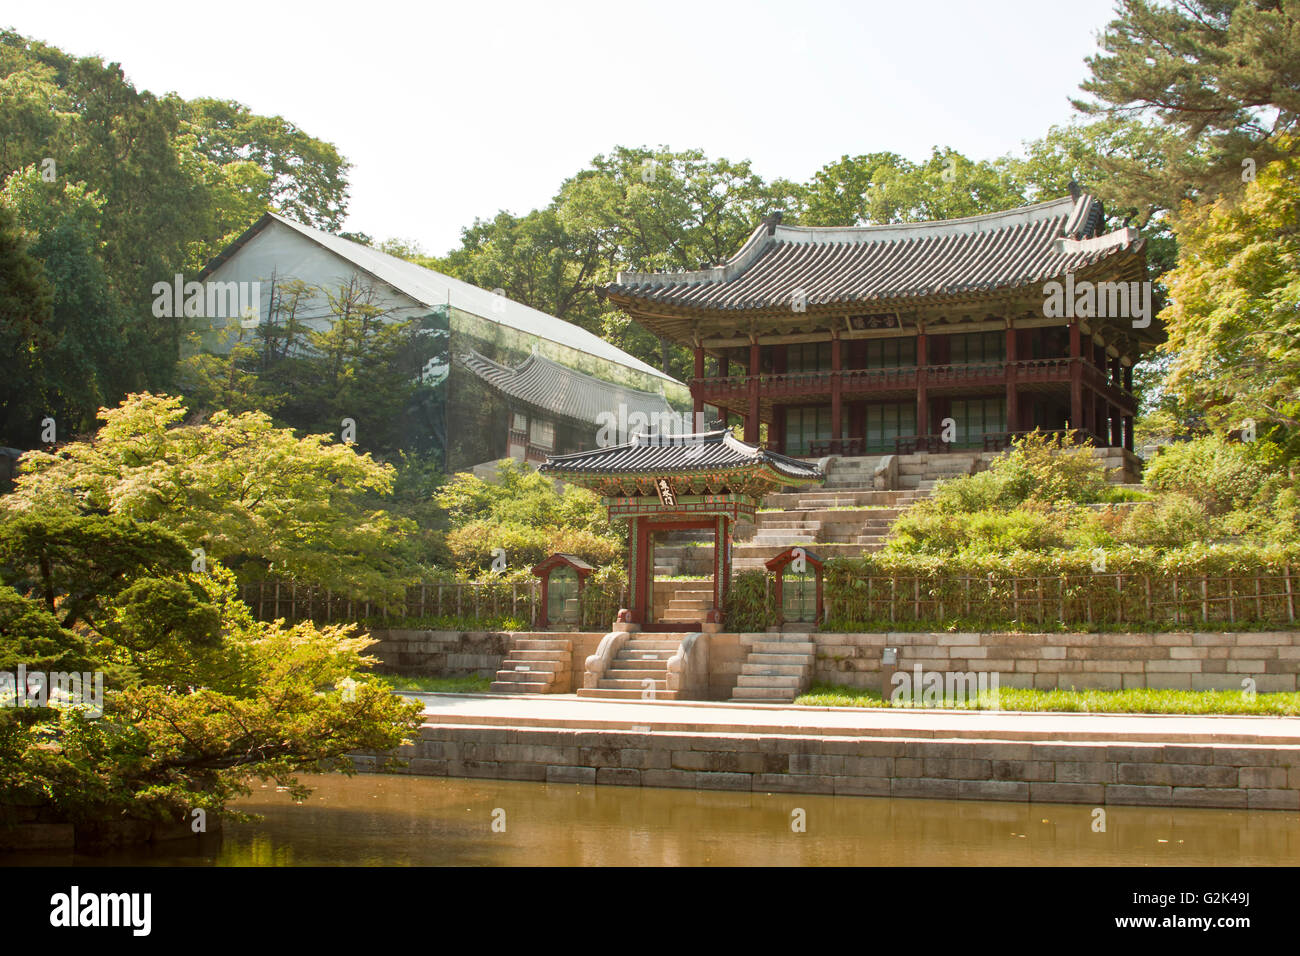 South Korea Garden Stock Photos & South Korea Garden Stock Images ...